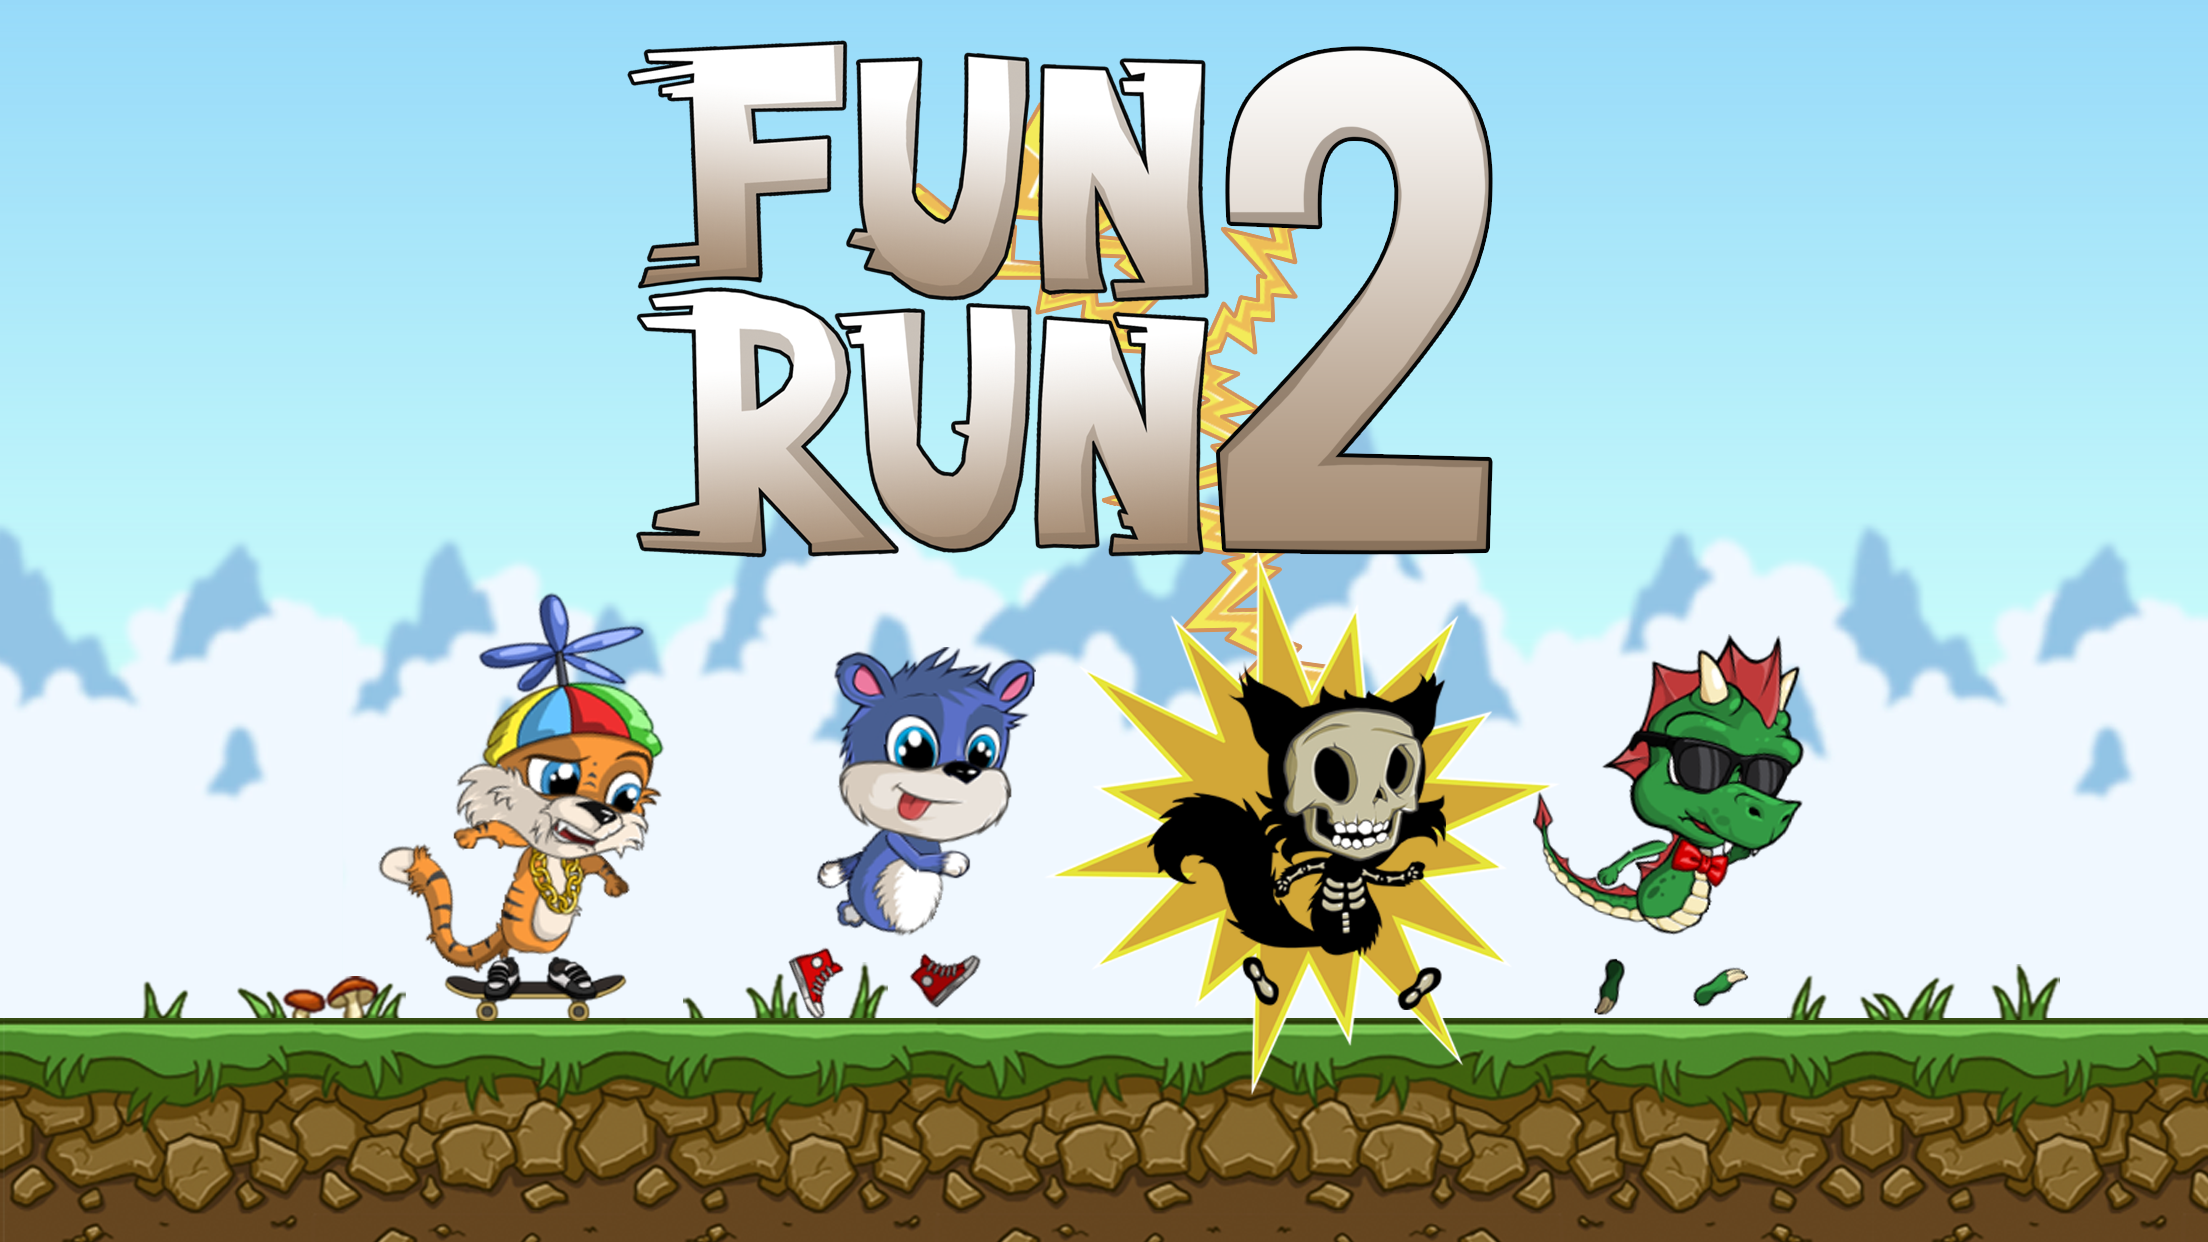 Fun Run 2 image - Fun Run 2 - Multiplayer Race - Mod DB